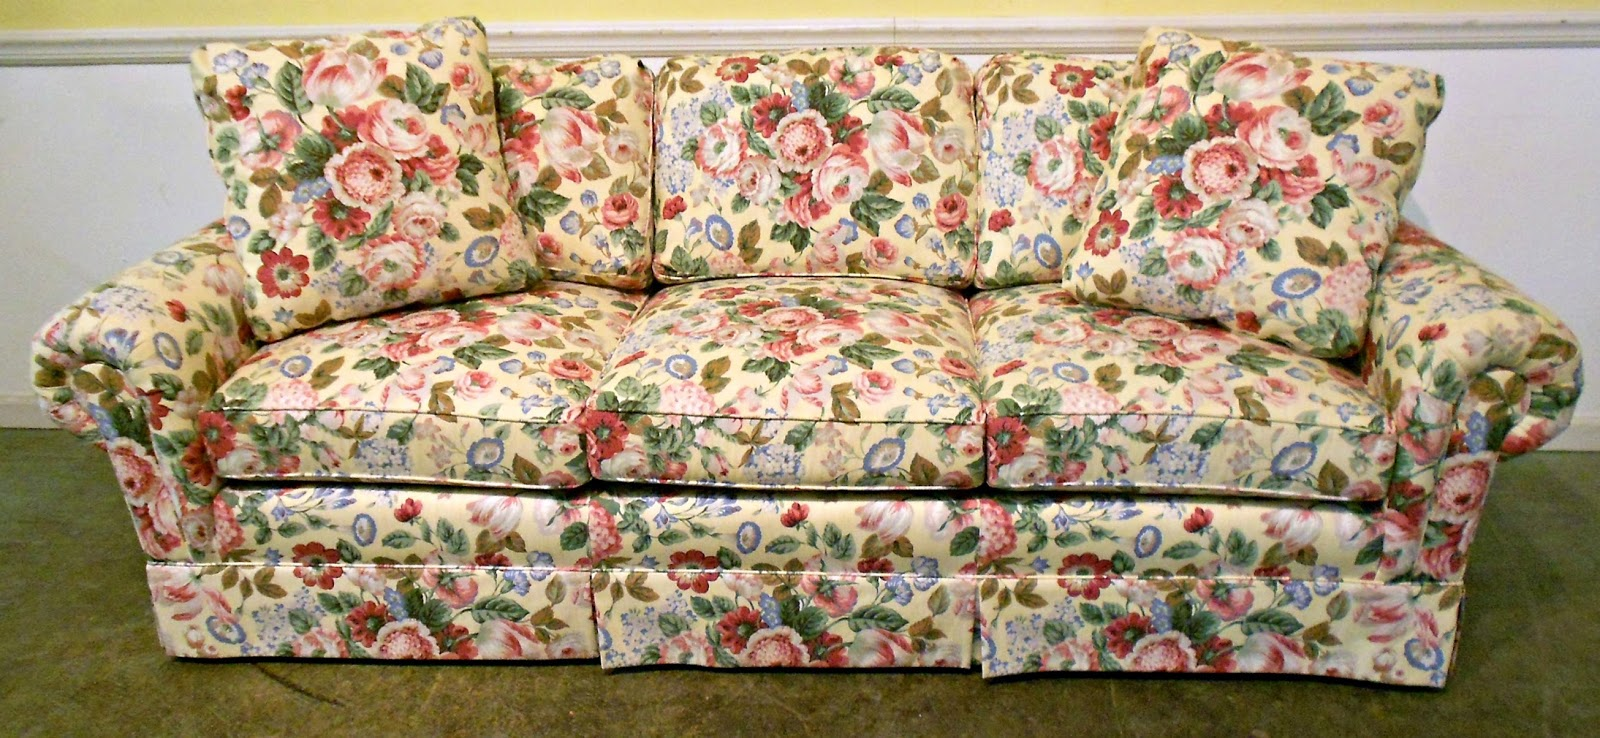 Restyle it Wright: Favorite Floral Fabric Round Up